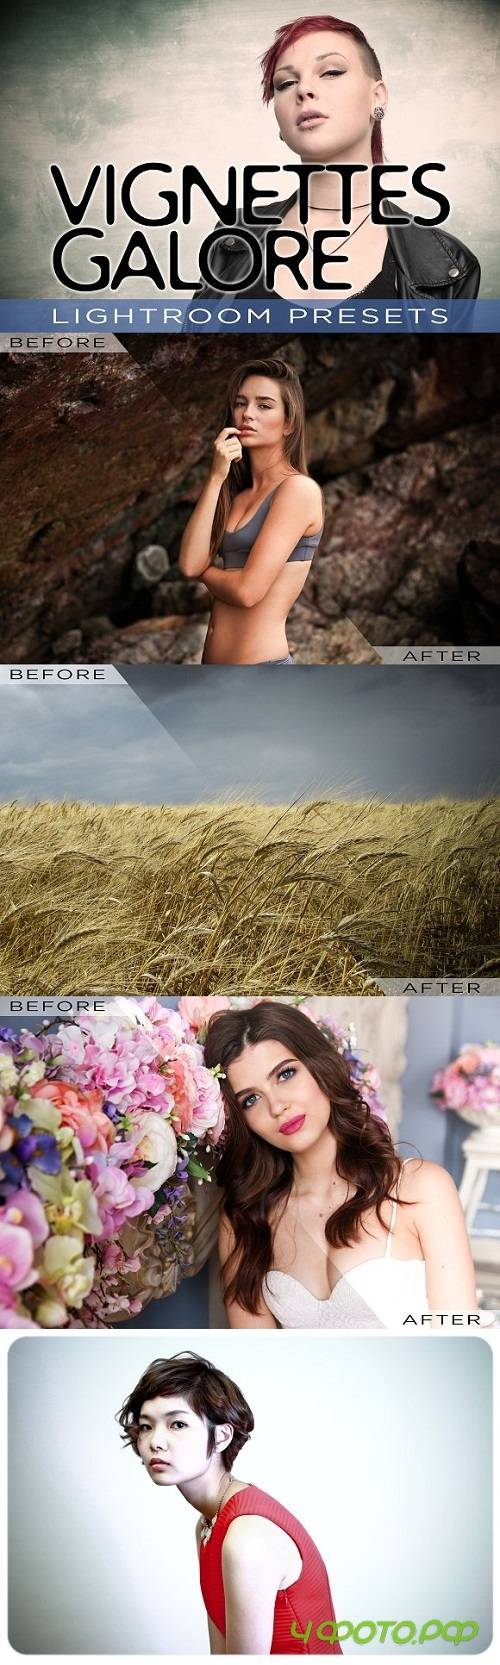 Vignettes Galore Lightroom Presets 1514475